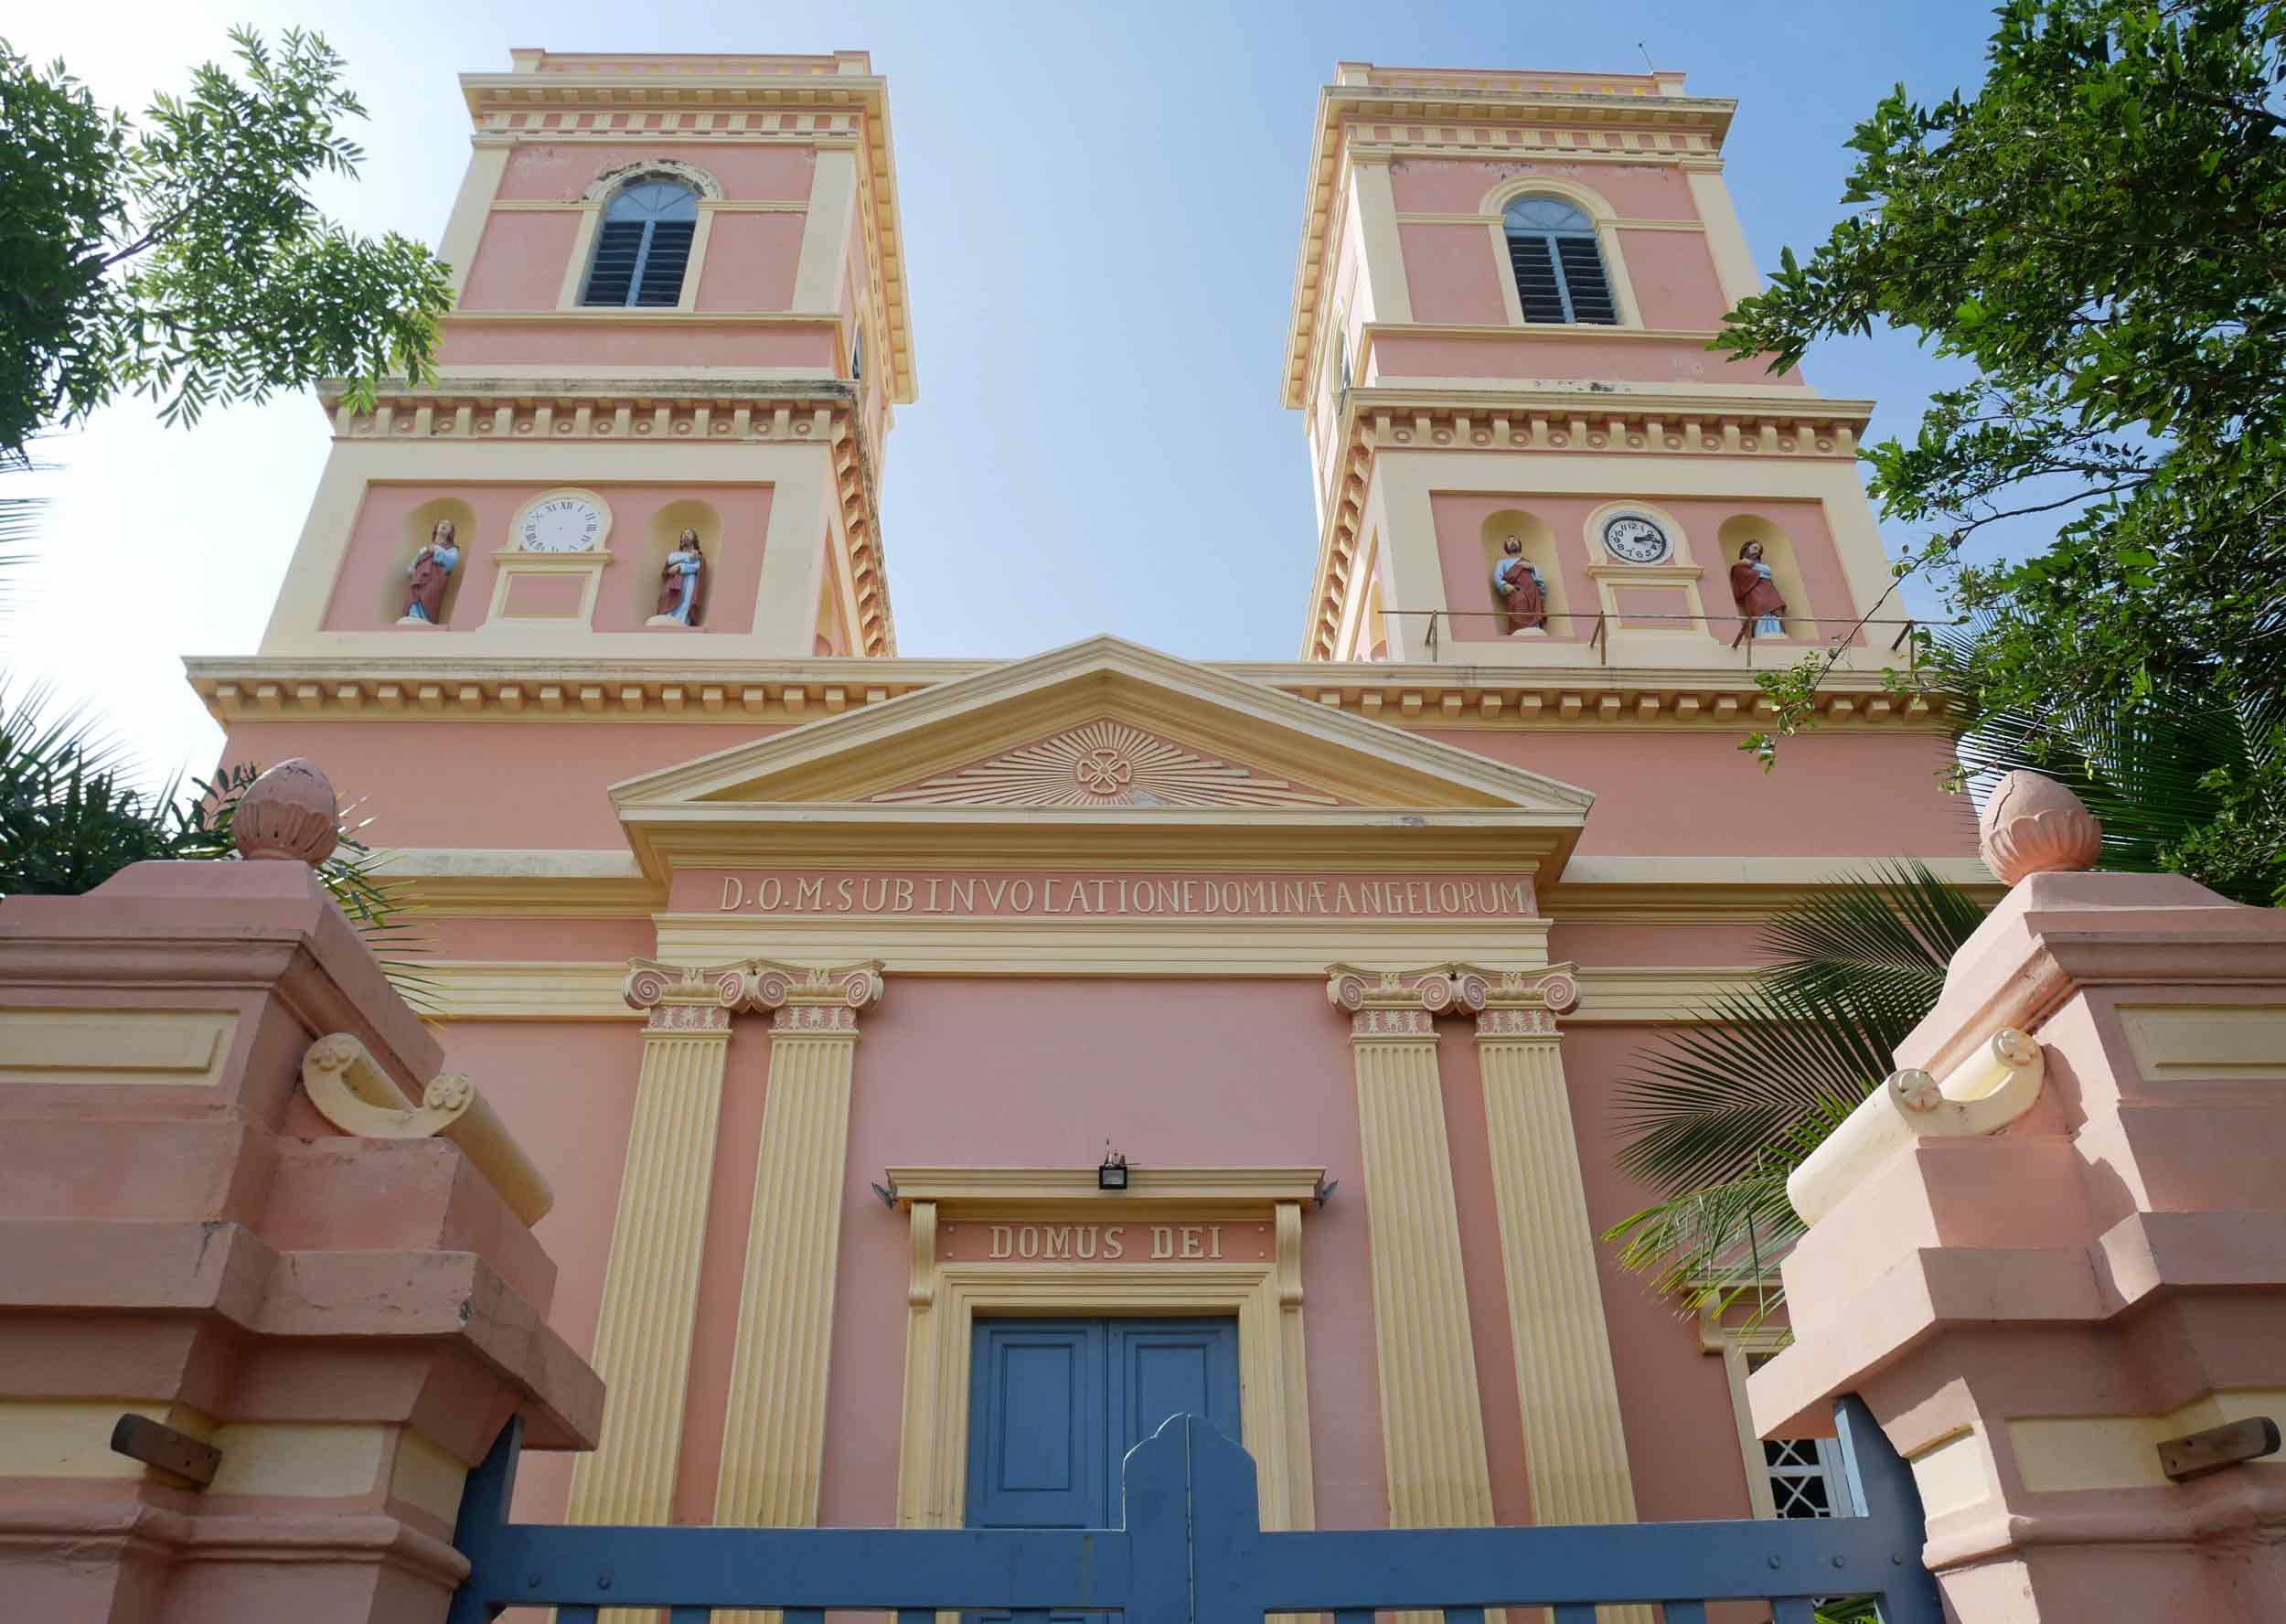 French colonial architecture and pastel colors are replete in this town.